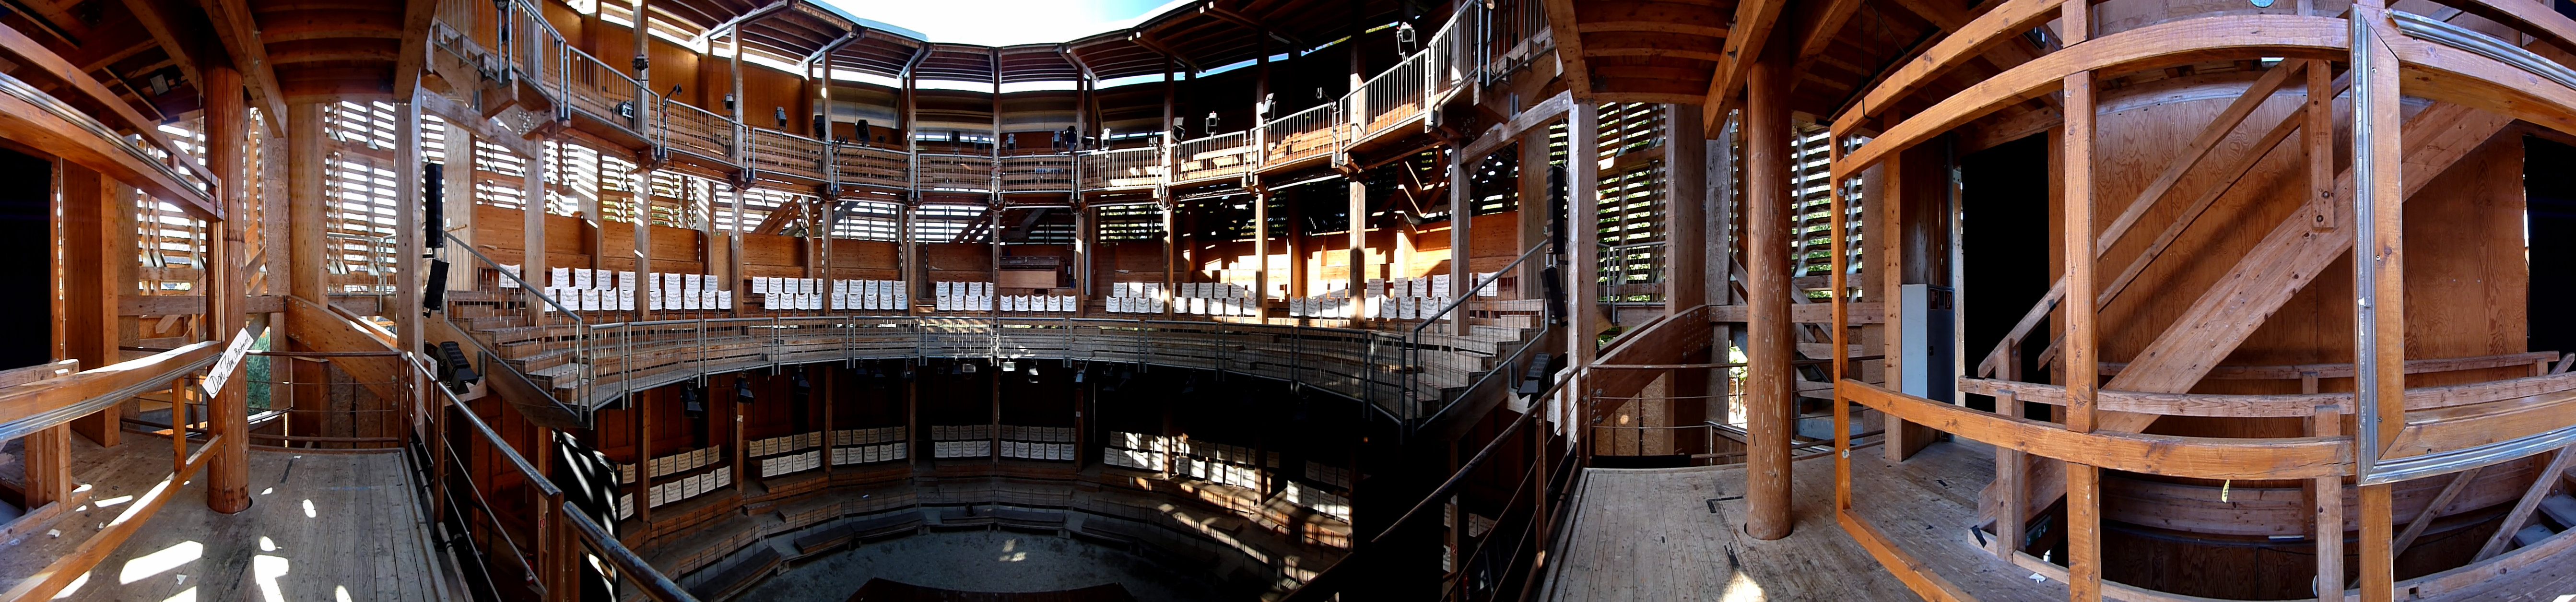 globetheater cr